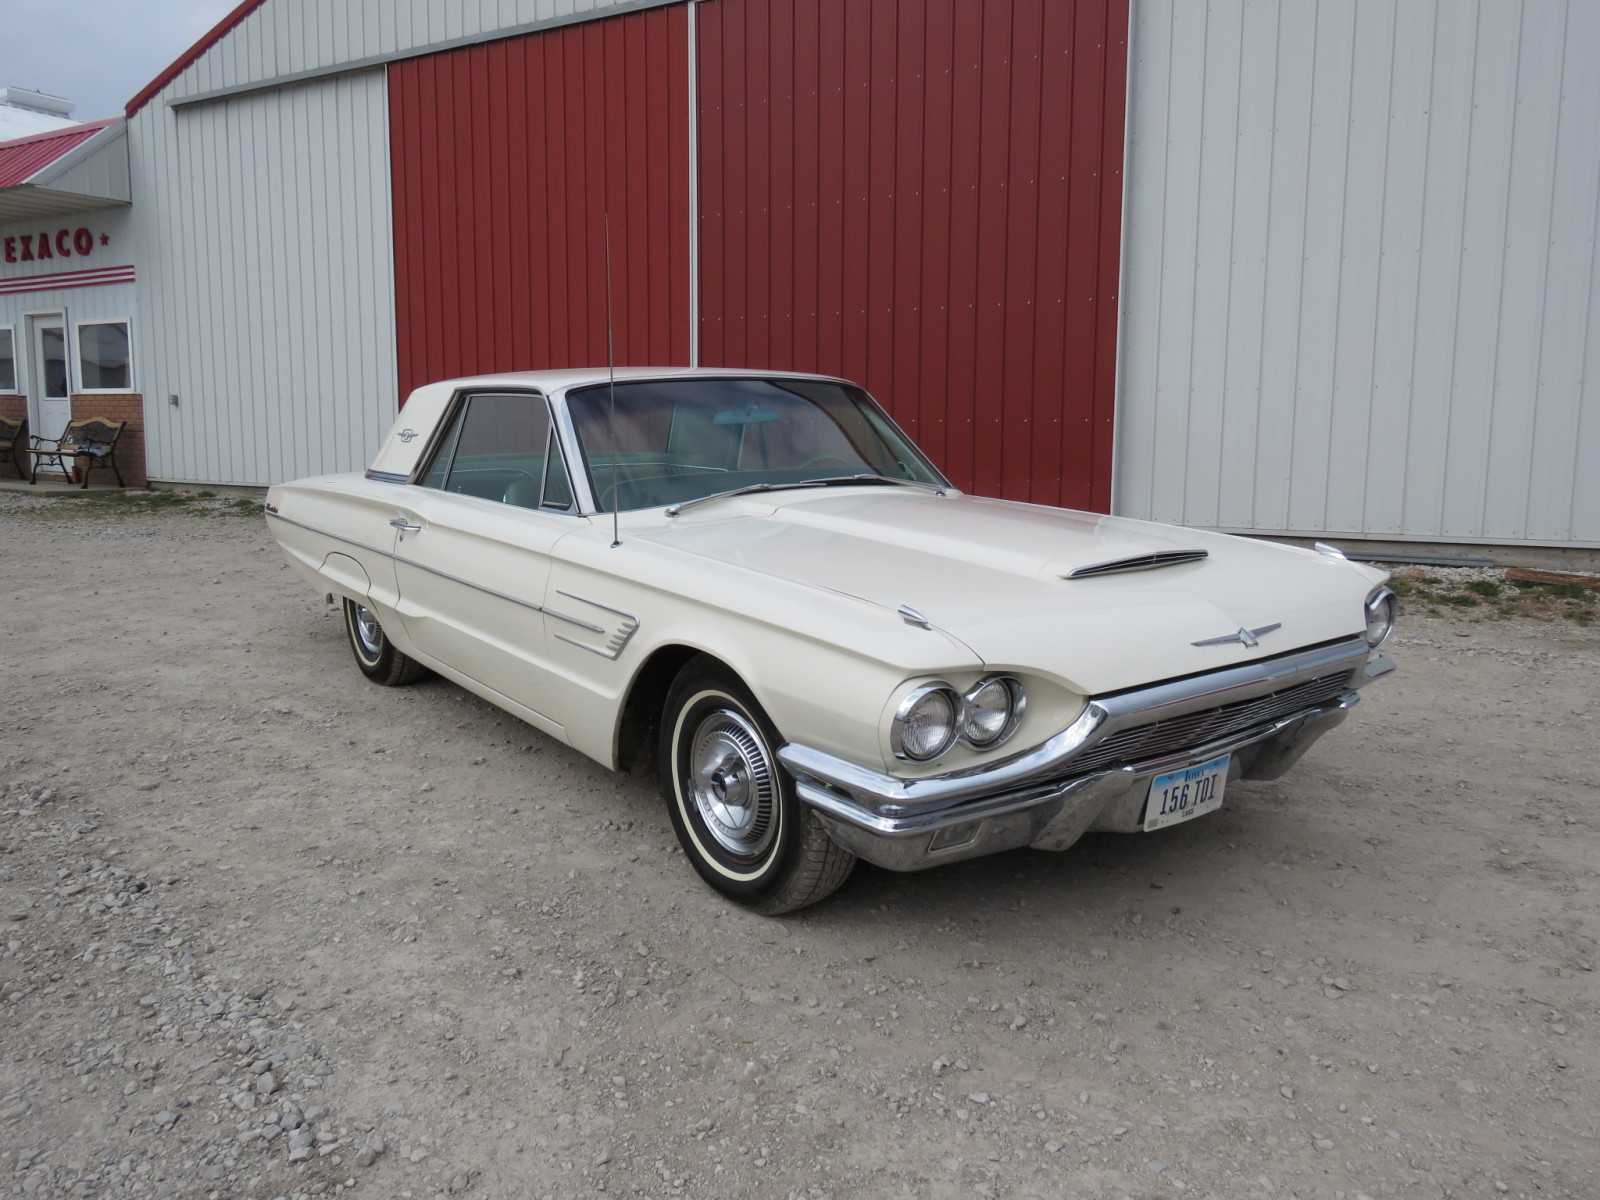 1965 Ford Thunderbird Coupe - Image 1